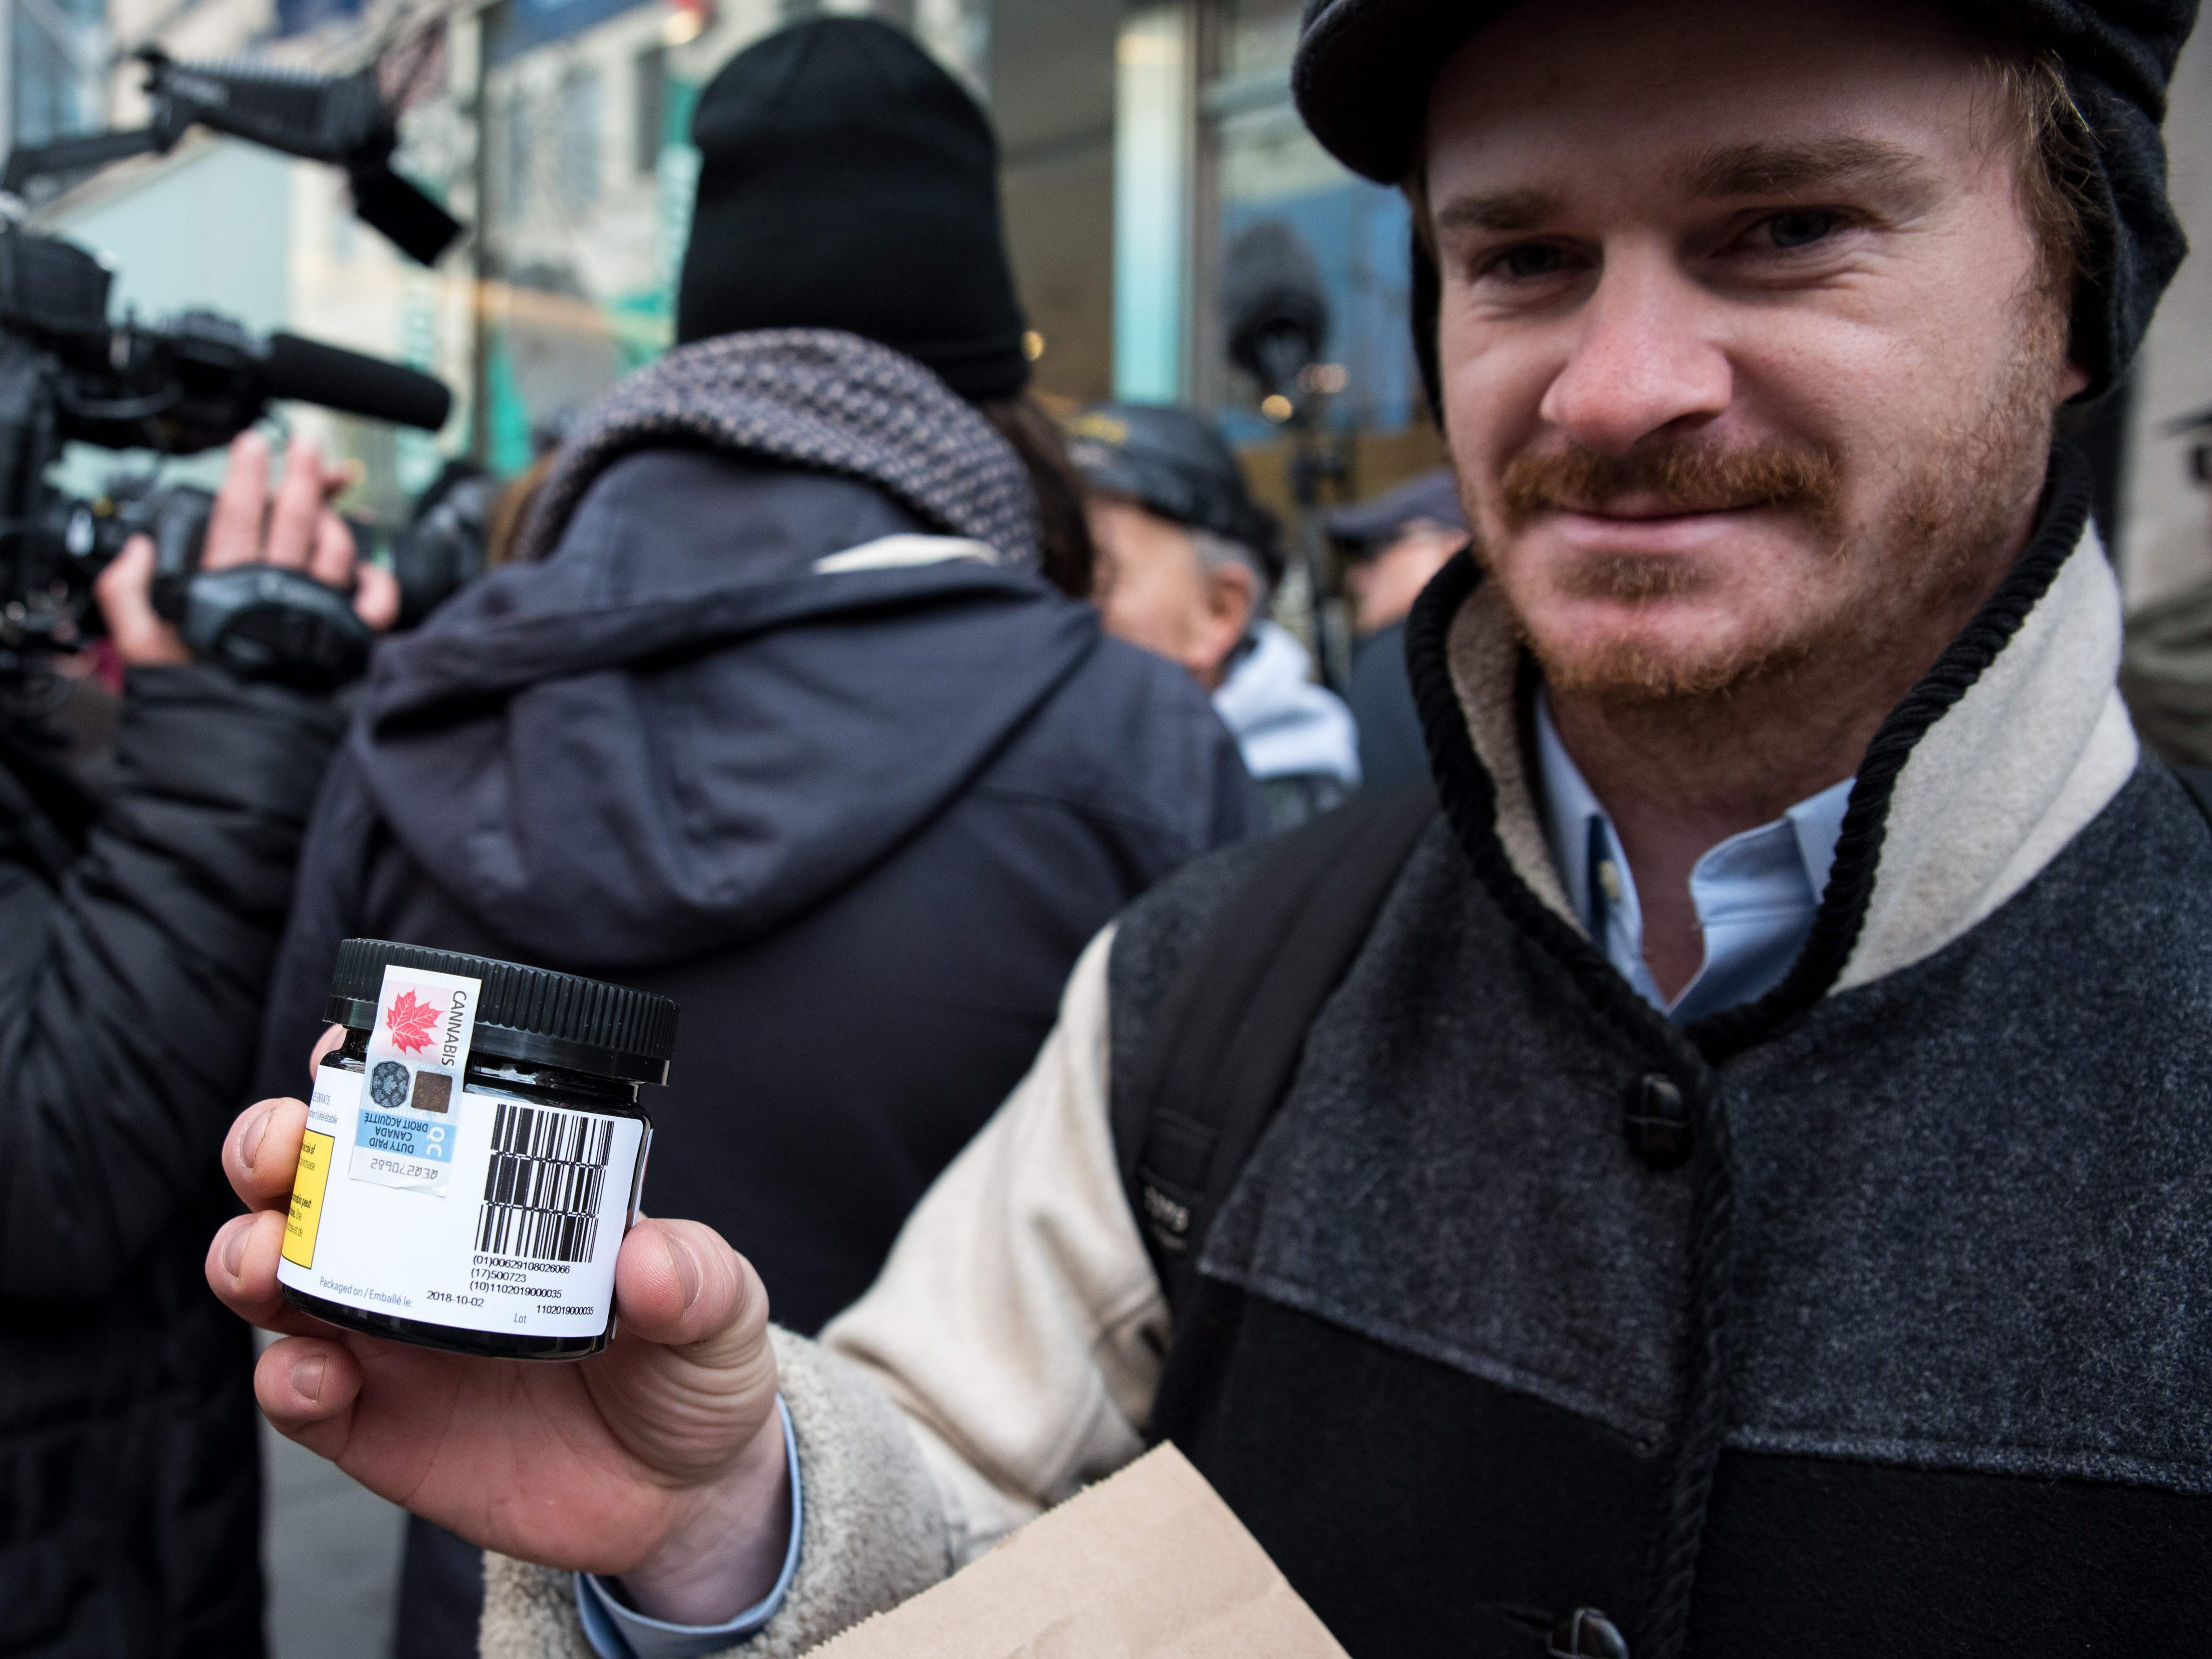 A customer shows a marijuana product that he bought after entering a cannabis store on October 17, 2018 in Montreal, Quebec. - Nearly a century of marijuana prohibition came to an end Wednesday as Canada became the first major Western nation to legalize and regulate its sale and recreational use. Scores of customers braved the cold for hours outside Tweed, a pot boutique in St John's, Newfoundland that opened briefly at midnight, to buy their first grams of legal cannabis.In total, Statistics Canada says 5.4 million Canadians will buy cannabis from legal dispensaries in 2018 -- about 15 percent of the population. Around 4.9 million already smoke. (Photo by MARTIN OUELLET-DIOTTE / AFP)MARTIN OUELLET-DIOTTE/AFP/Getty Images ORIG FILE ID: AFP_1A36J8